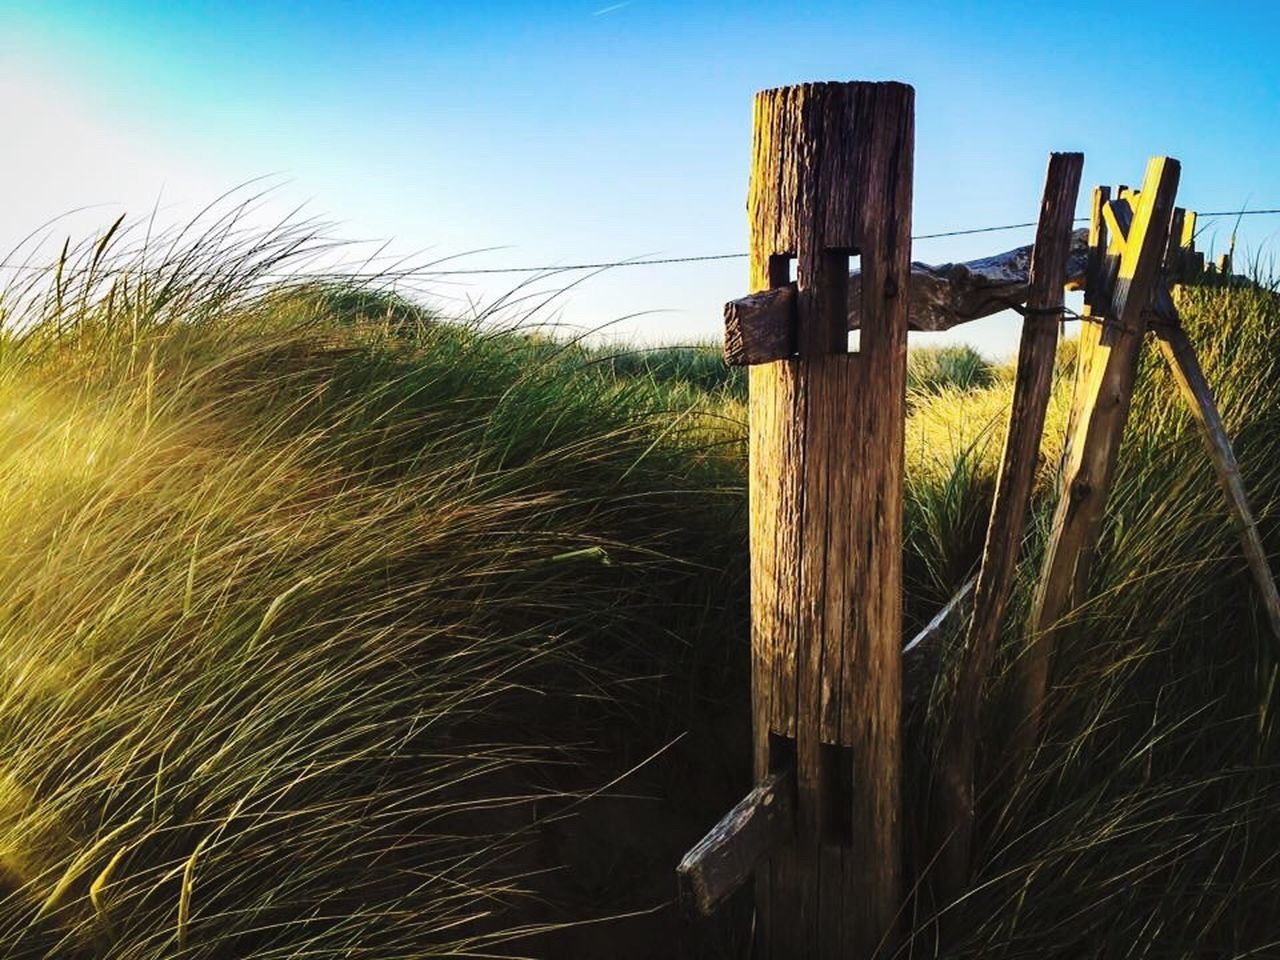 safety, wood - material, no people, protection, grass, field, wooden post, barbed wire, rural scene, outdoors, sky, agriculture, day, close-up, nature